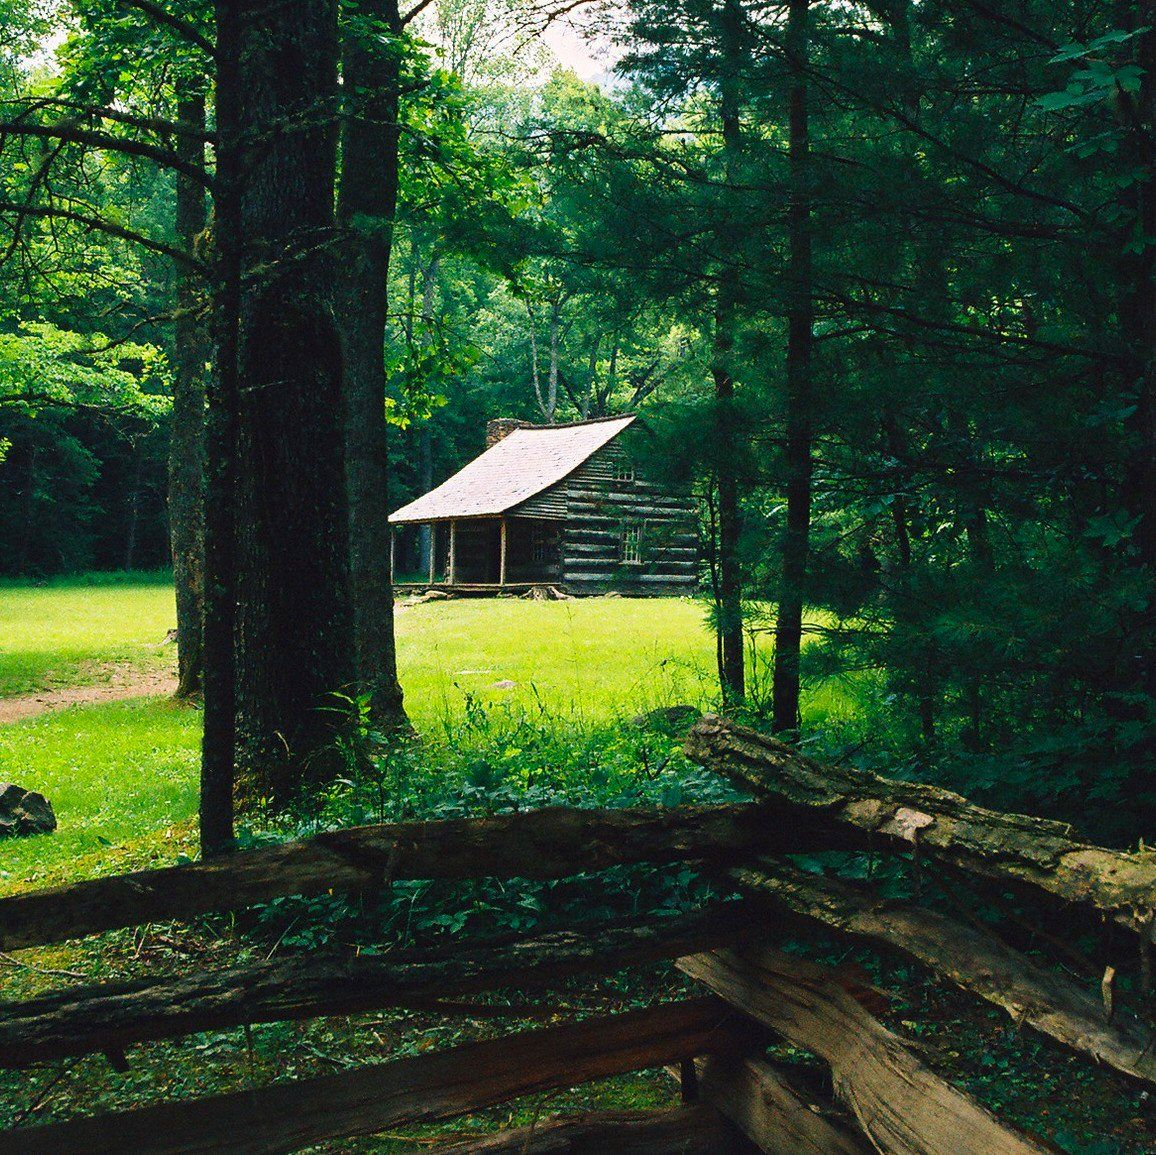 Let's go and explore the cabins in Cades Cove! #letsgo